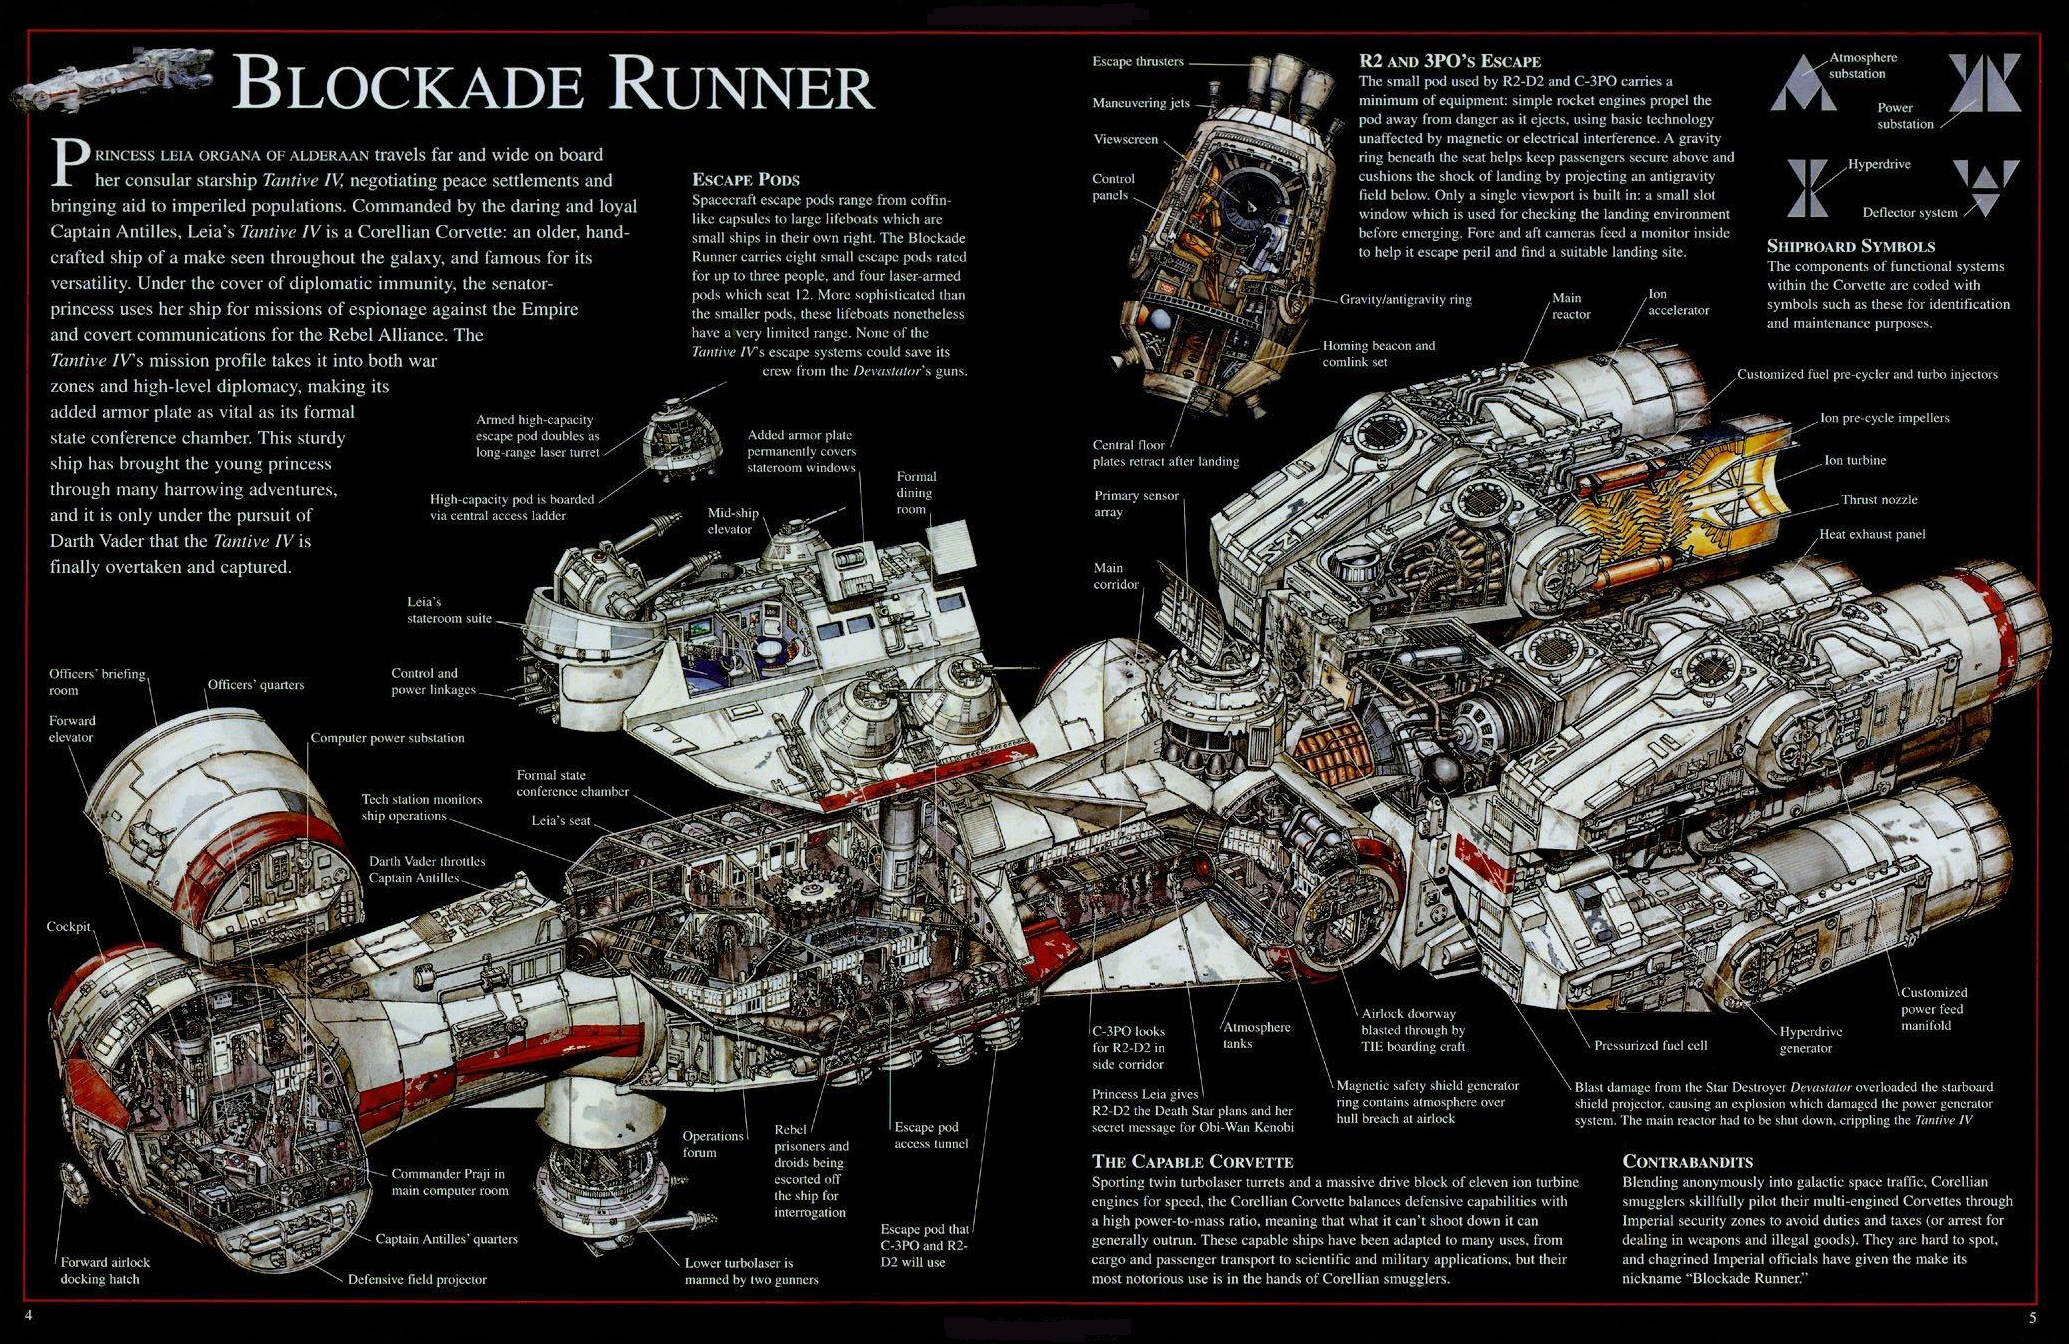 160743833283 likewise U S S Defiant Bridge 110906635 as well Enterprise NX 01 Armory 489665320 moreover Firefly Serenity Cutaway Poster Set besides Category Danube class. on deep space nine floor plans